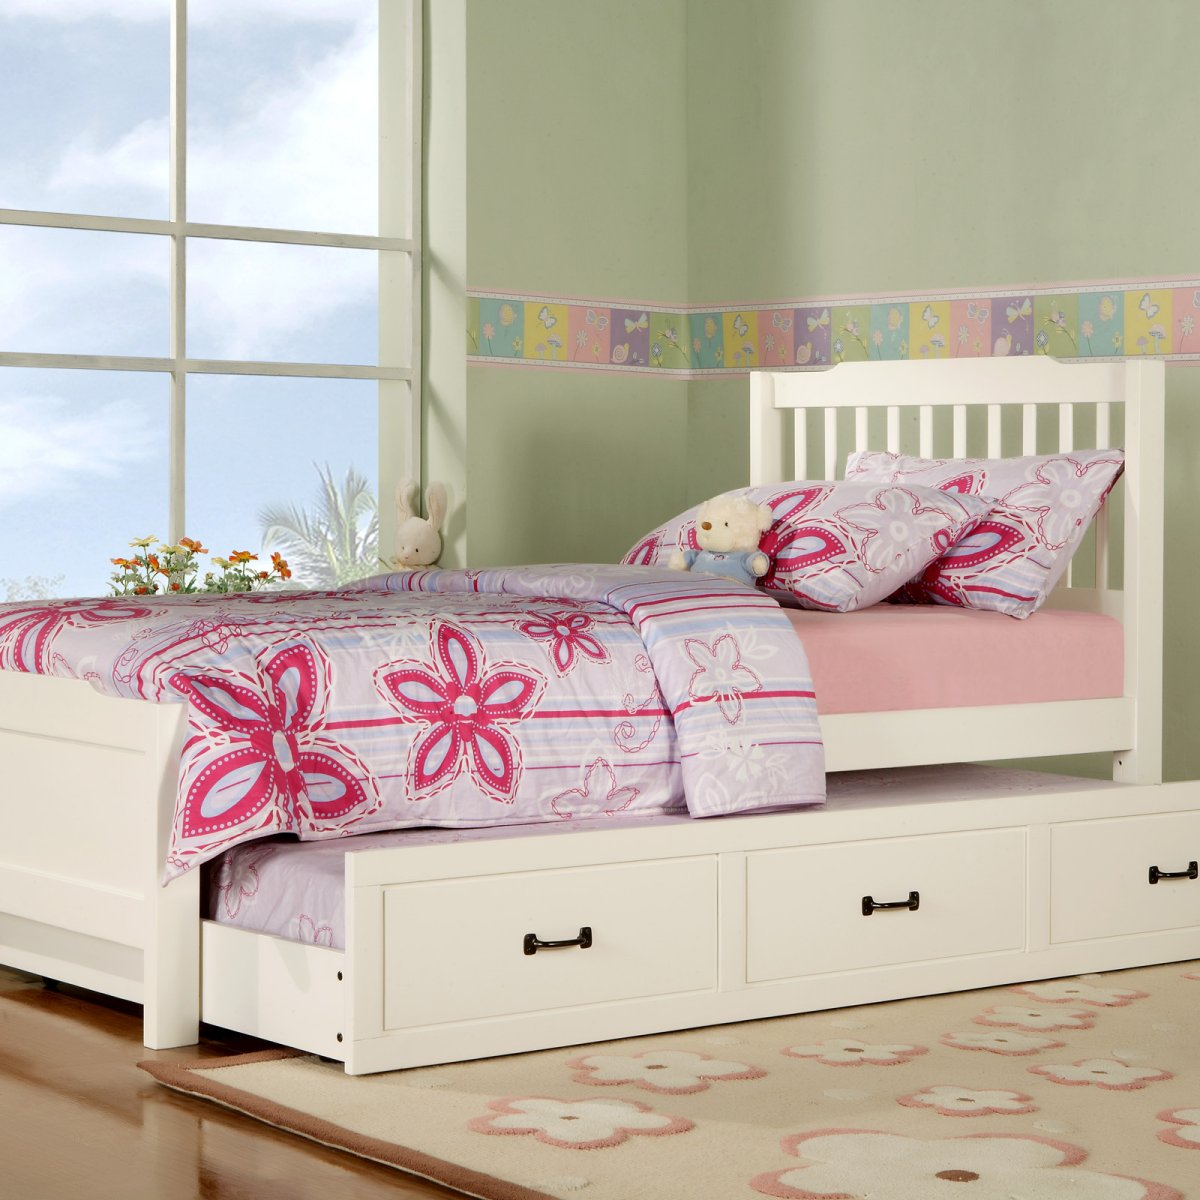 trundle beds for children with zzpink flower theme on bed and rug